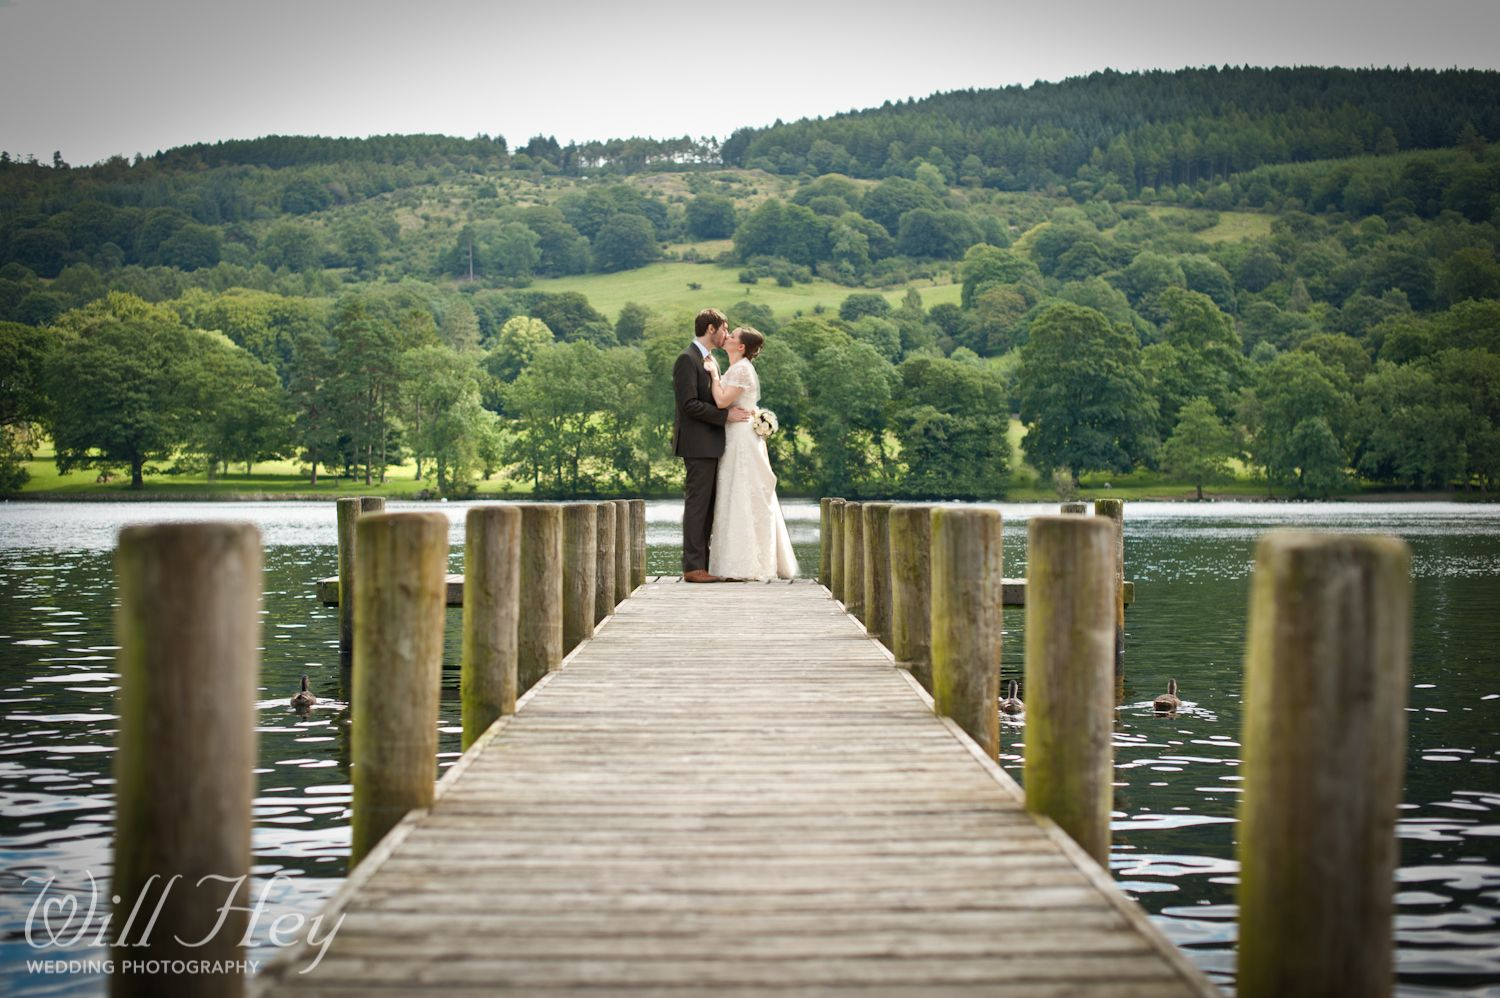 Wedding Photography At The Lakeside Hotel In Cumbria